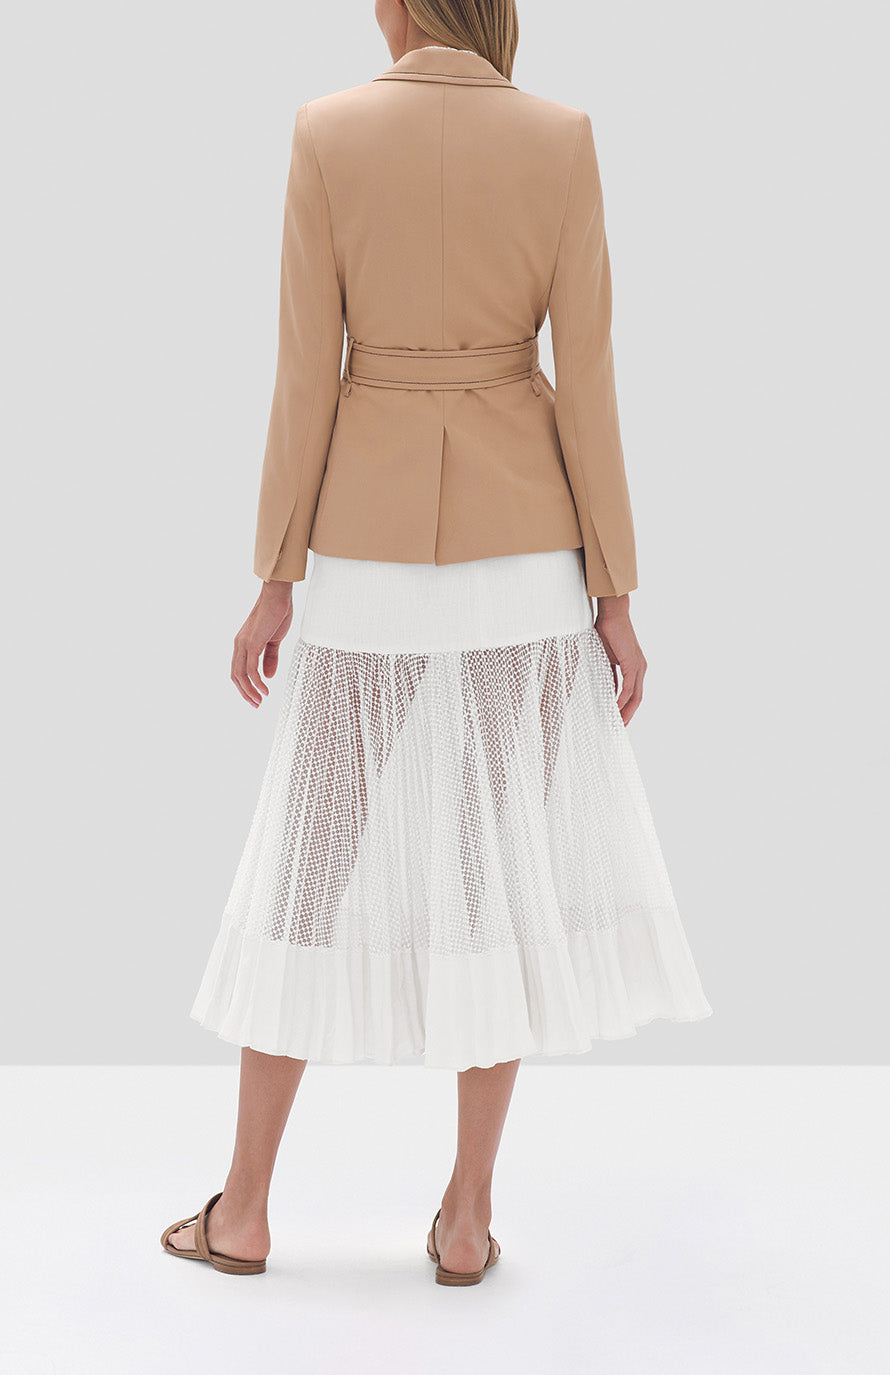 Alexis Nourdine Blazer in Striped Tan, Wera Top in White, Bartley Skirt in White - Rear View